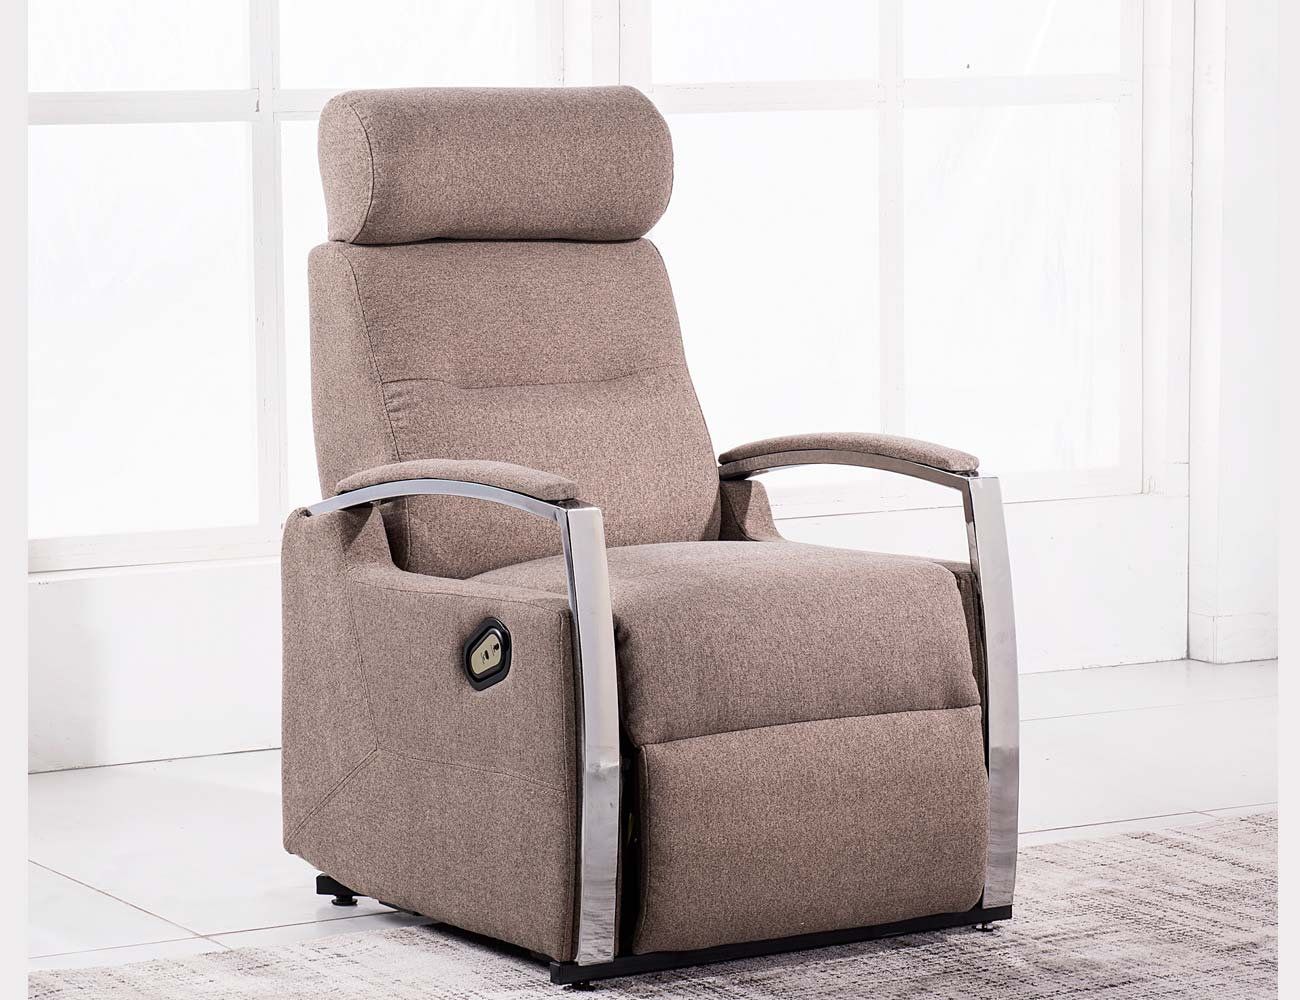 Sillon relax levanta personas power lift masaje calor moka 2